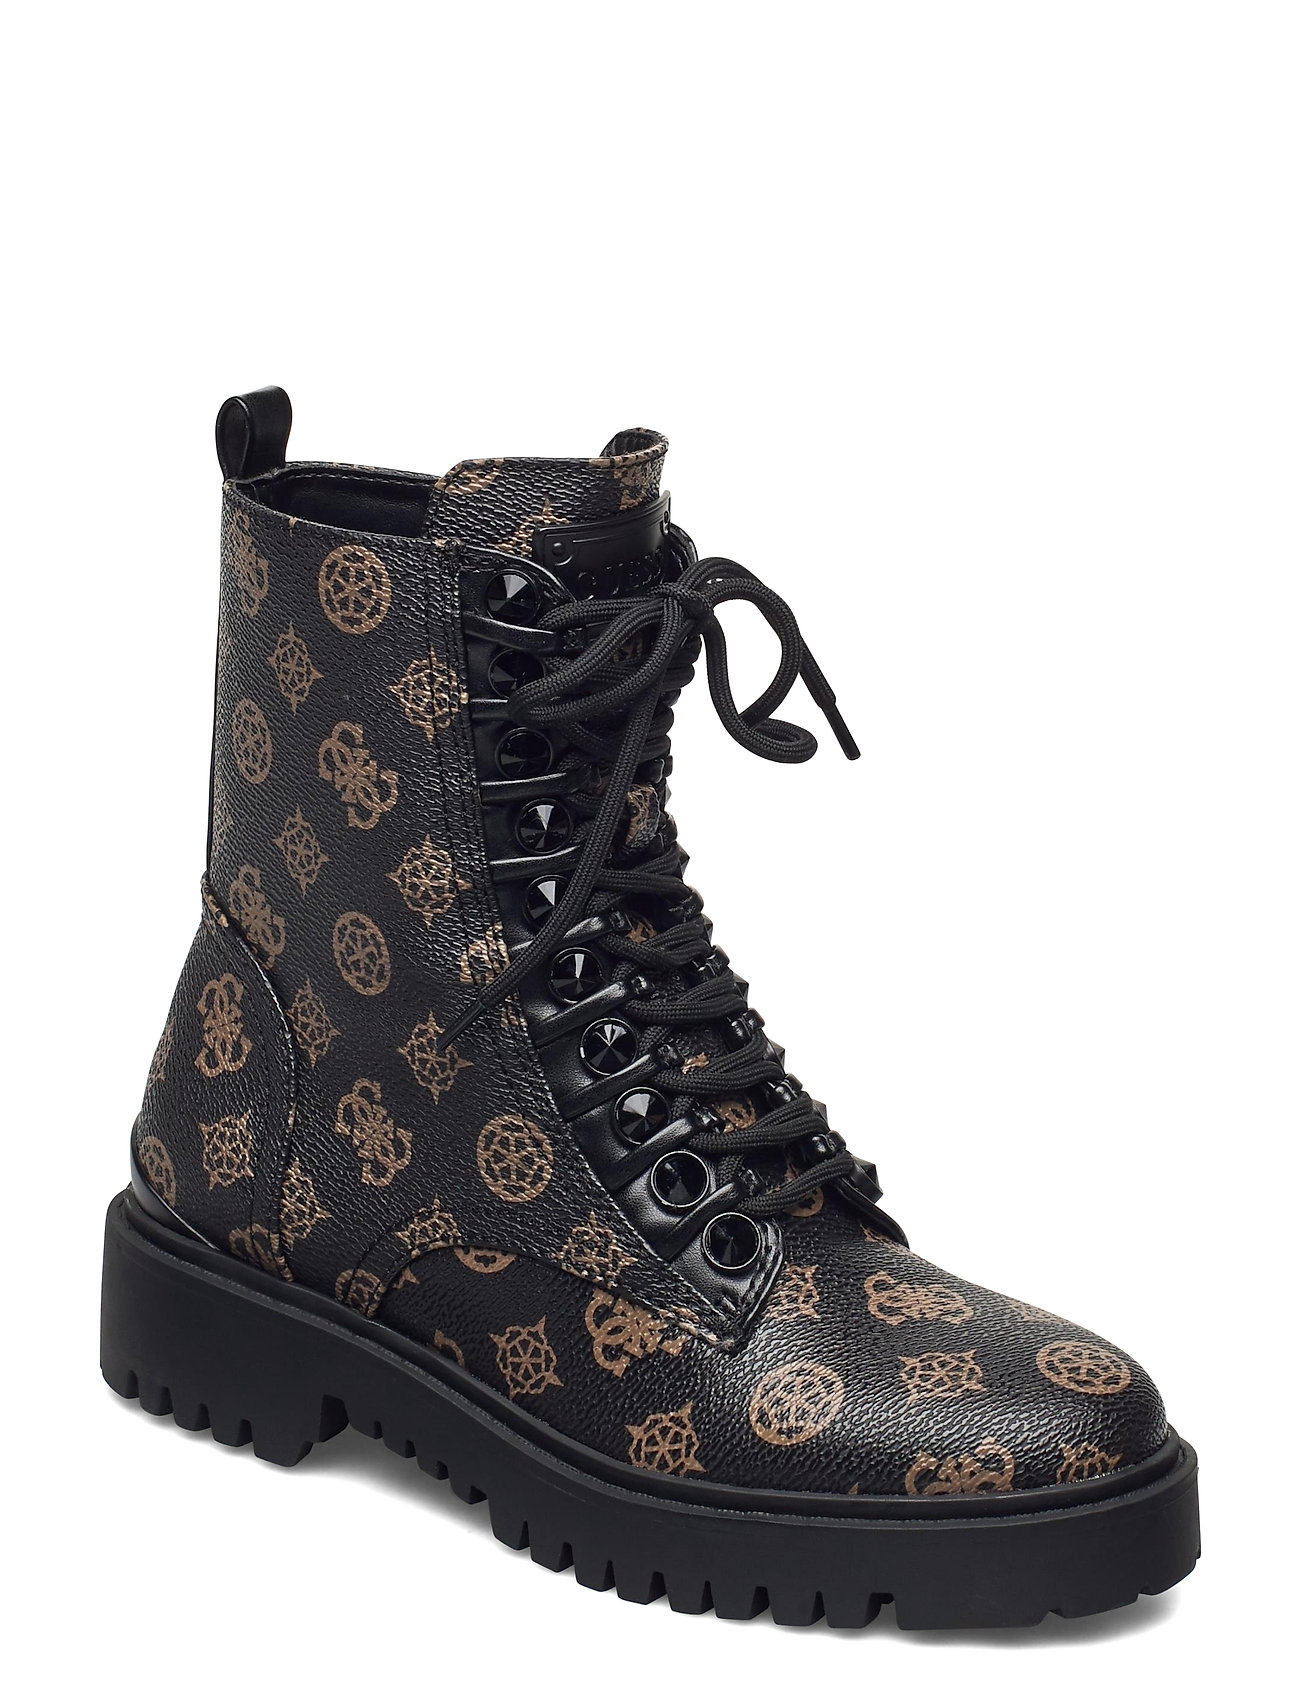 Image of Oxana/Stivaletto /Leat Shoes Boots Ankle Boots Ankle Boot - Flat Brun GUESS (3470937475)